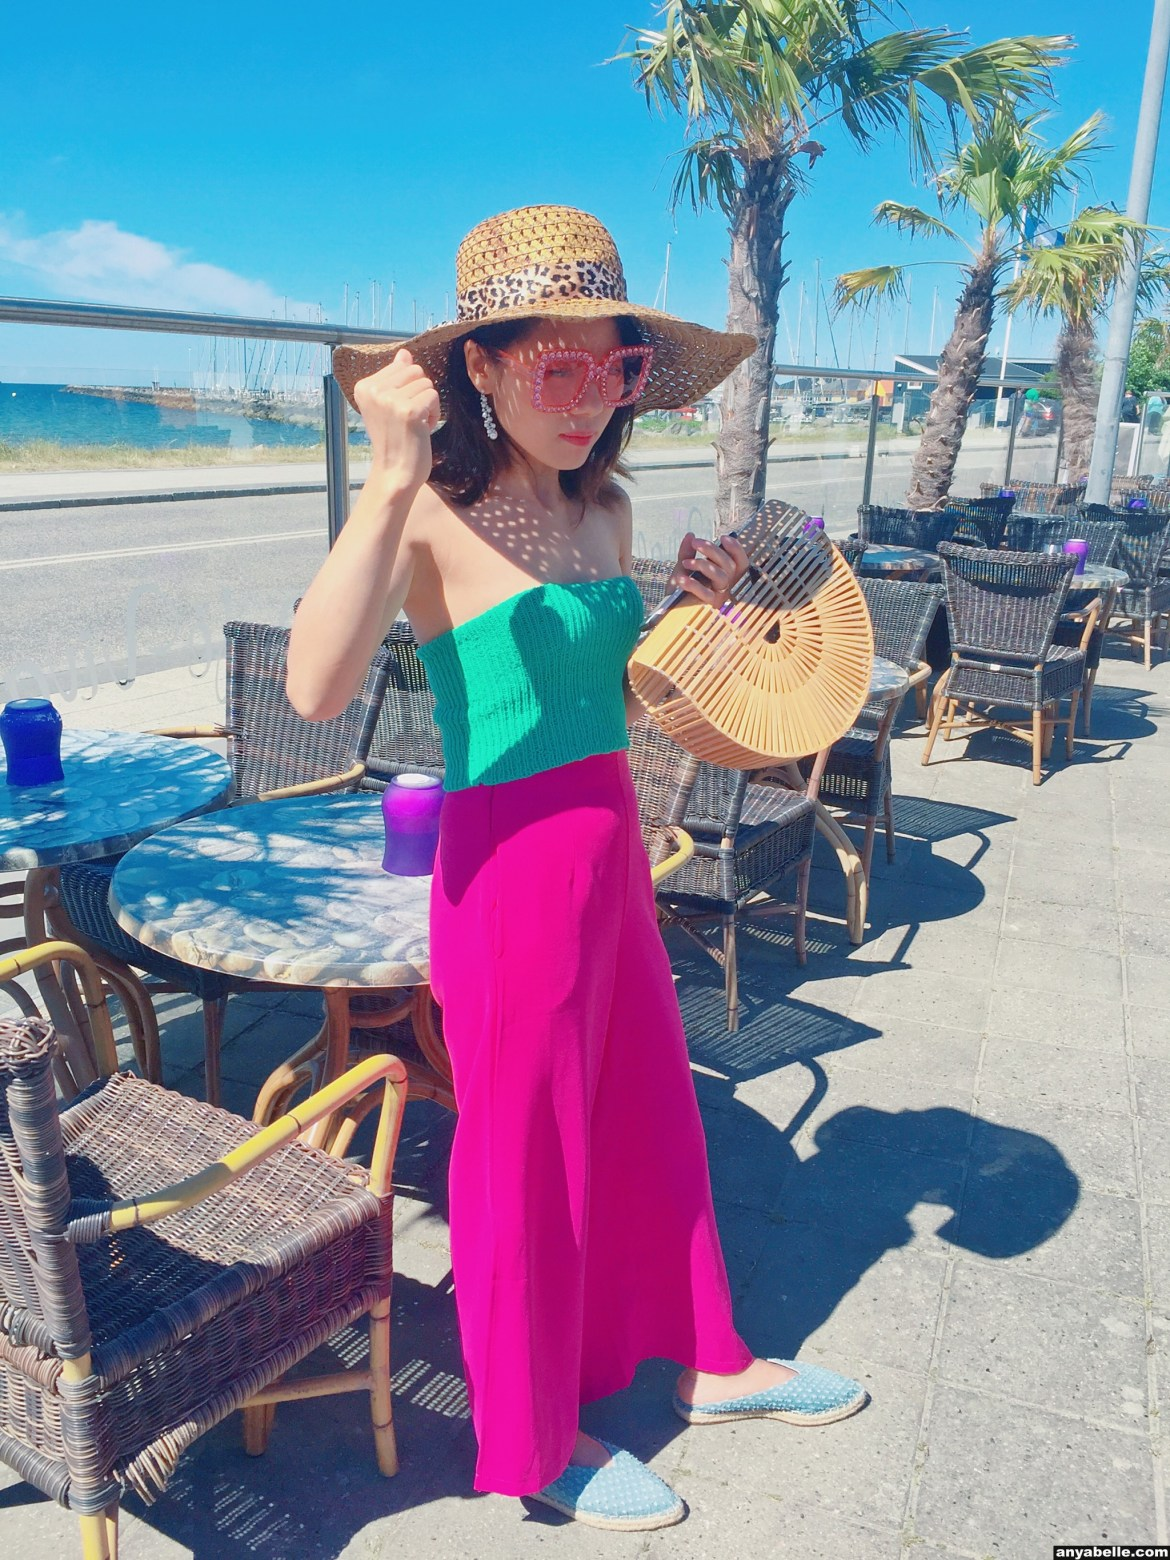 OOTD,Instagram, Blogger,Street Style, Style,Bamboo bag, Sunglasses, Lifestyle, Outfit, Fashion,Ocean, Holiday style, Flower, Coffee, Beach, Pizza 每日穿搭,时尚博主,生活方式,街拍,风格, 穿搭,时尚,大海,度假风, 咖啡,沙滩, 披萨, Ins风, 竹包 ,鲜花, 太阳镜